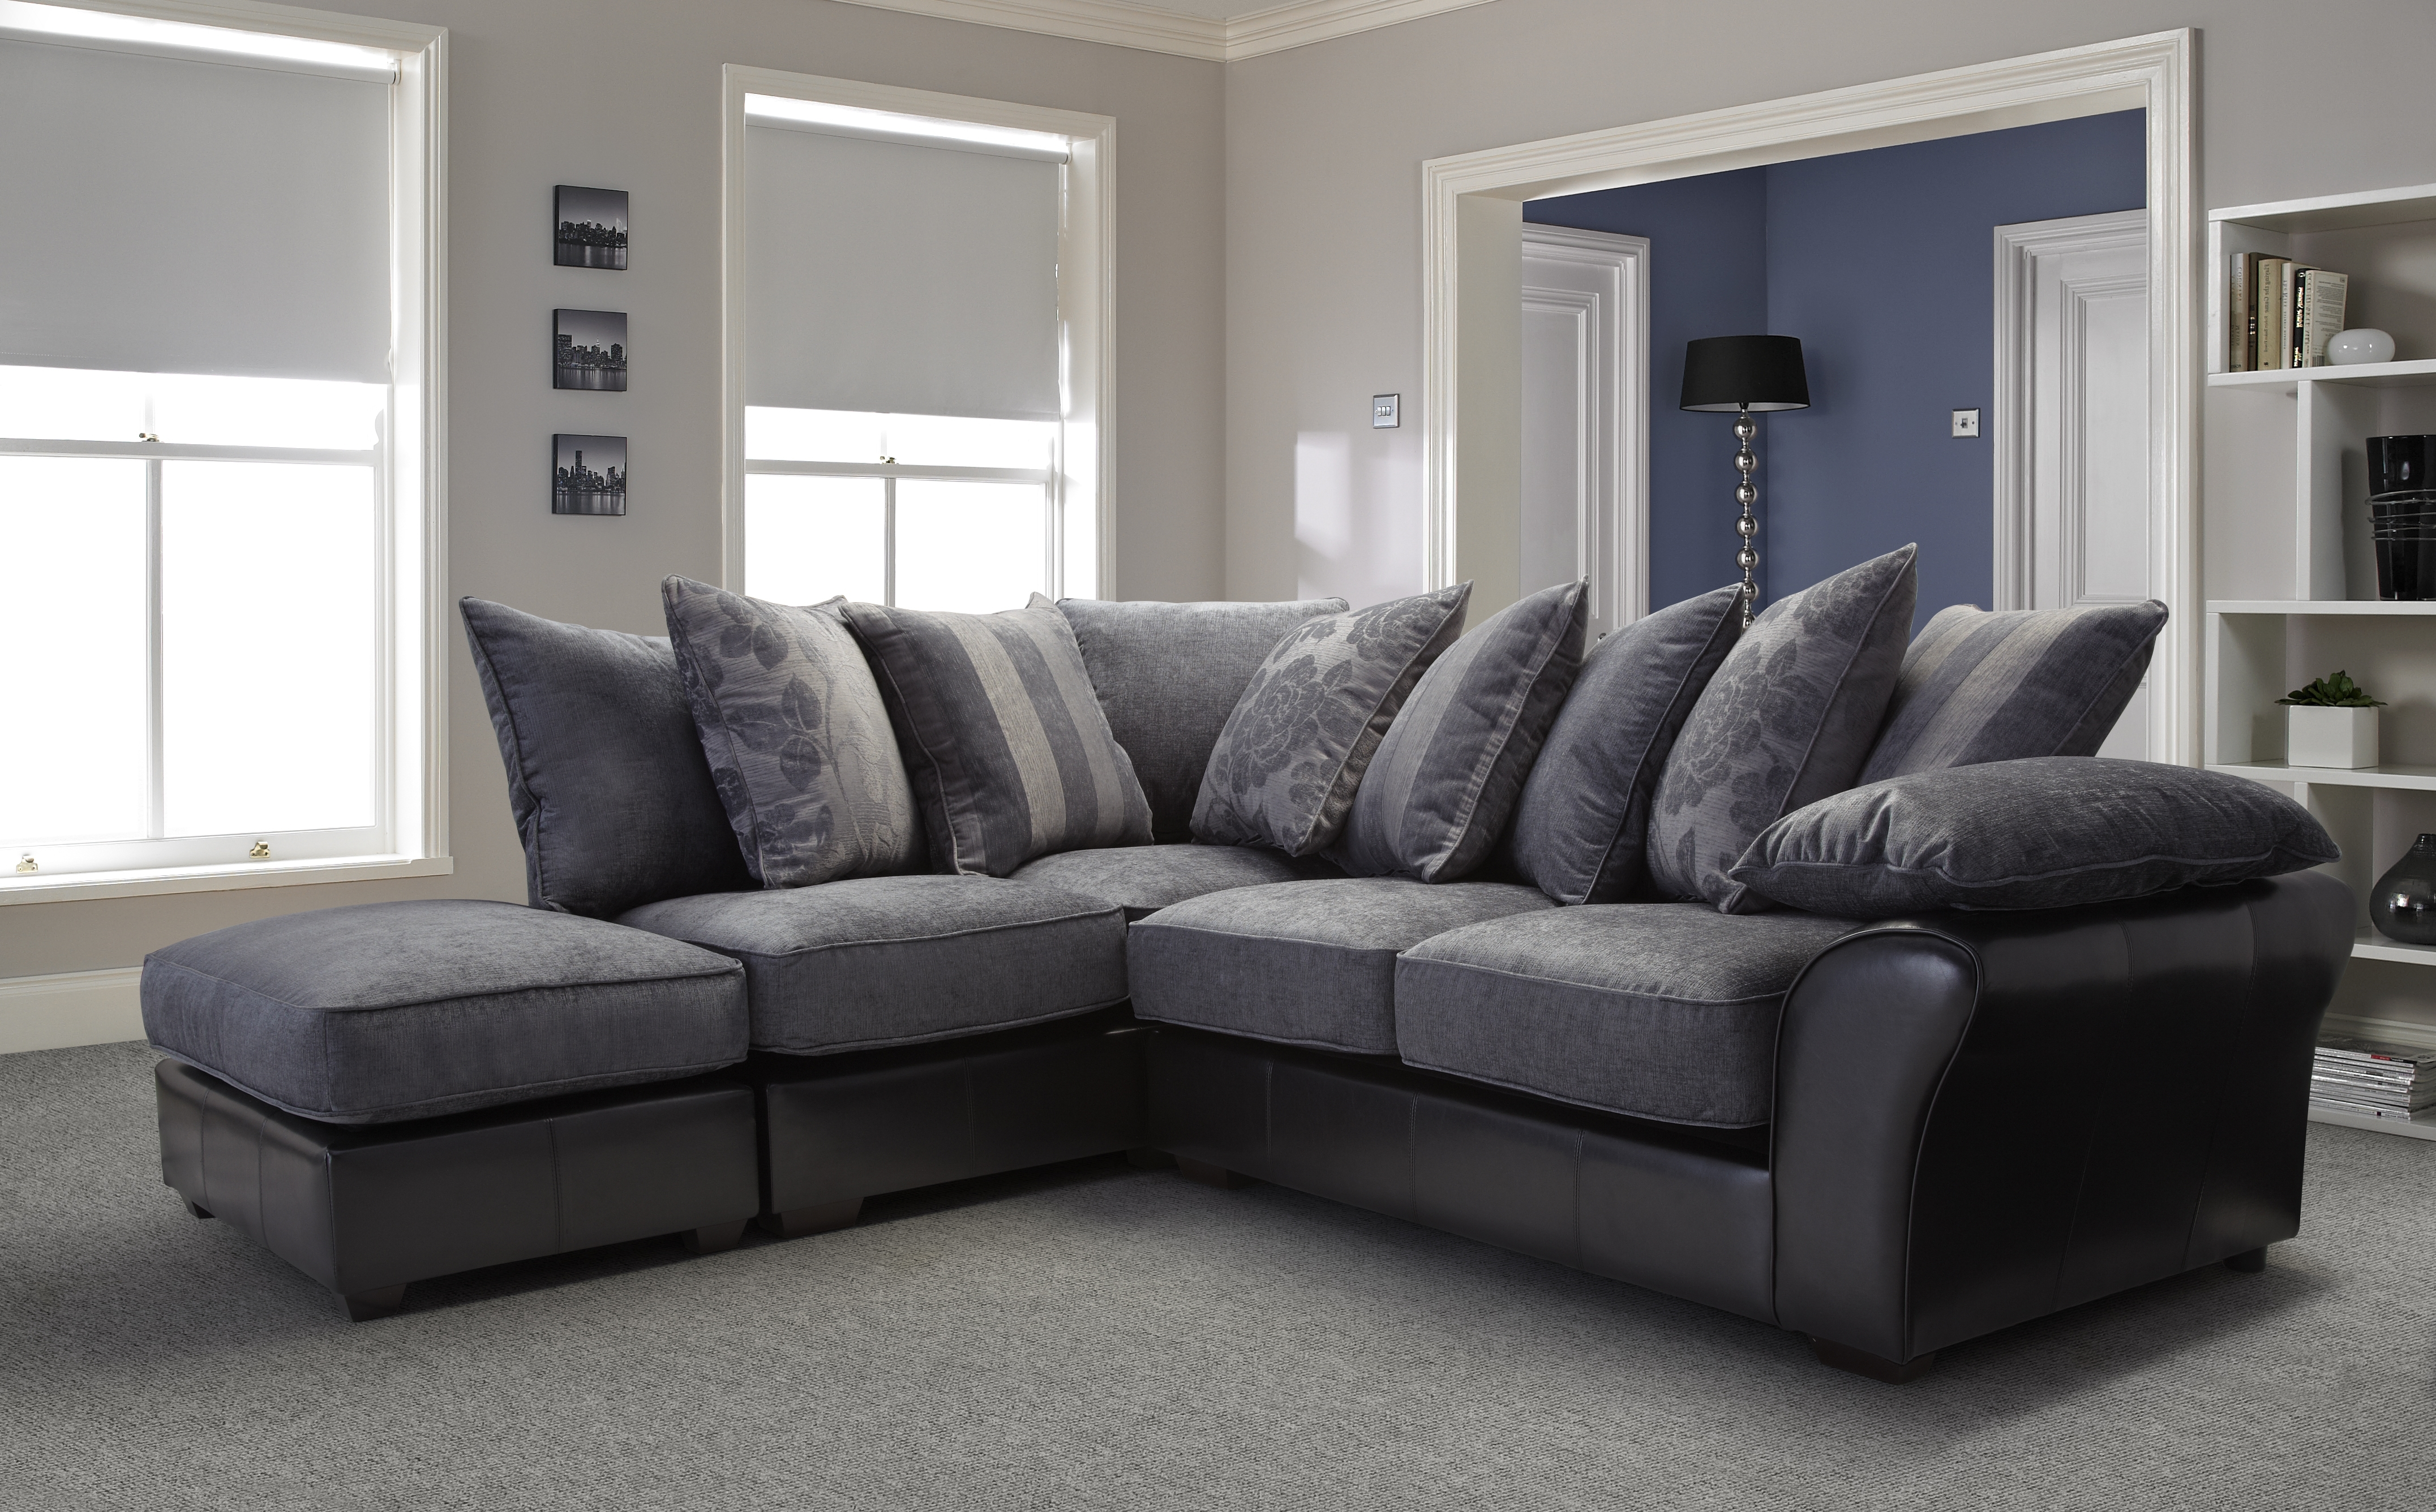 Leather Corner Sofas Regarding Most Recently Released Furniture: Breathtaking Corner Sofas Decorating Ideas Leather (View 8 of 20)